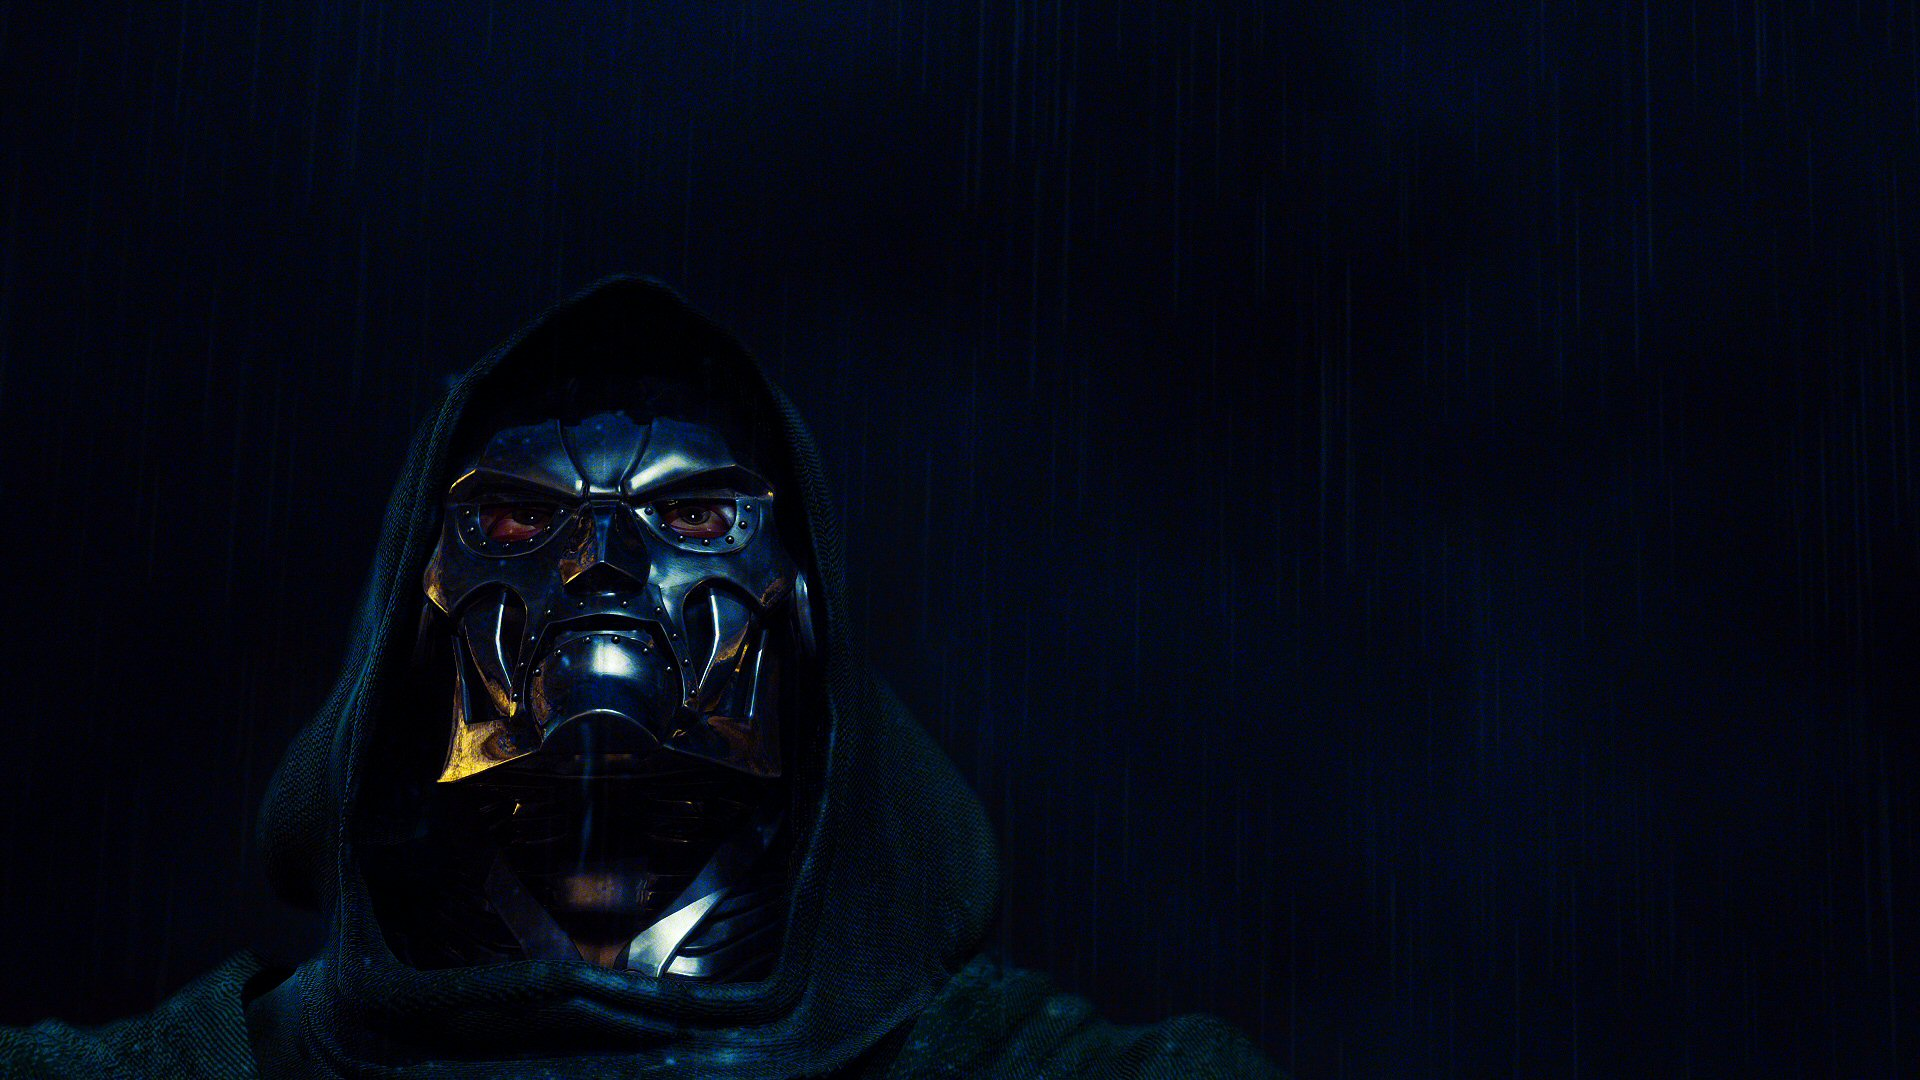 Masks Marvel Wallpaper 1920x1080 Masks Marvel Comics Doctor Doom 1920x1080